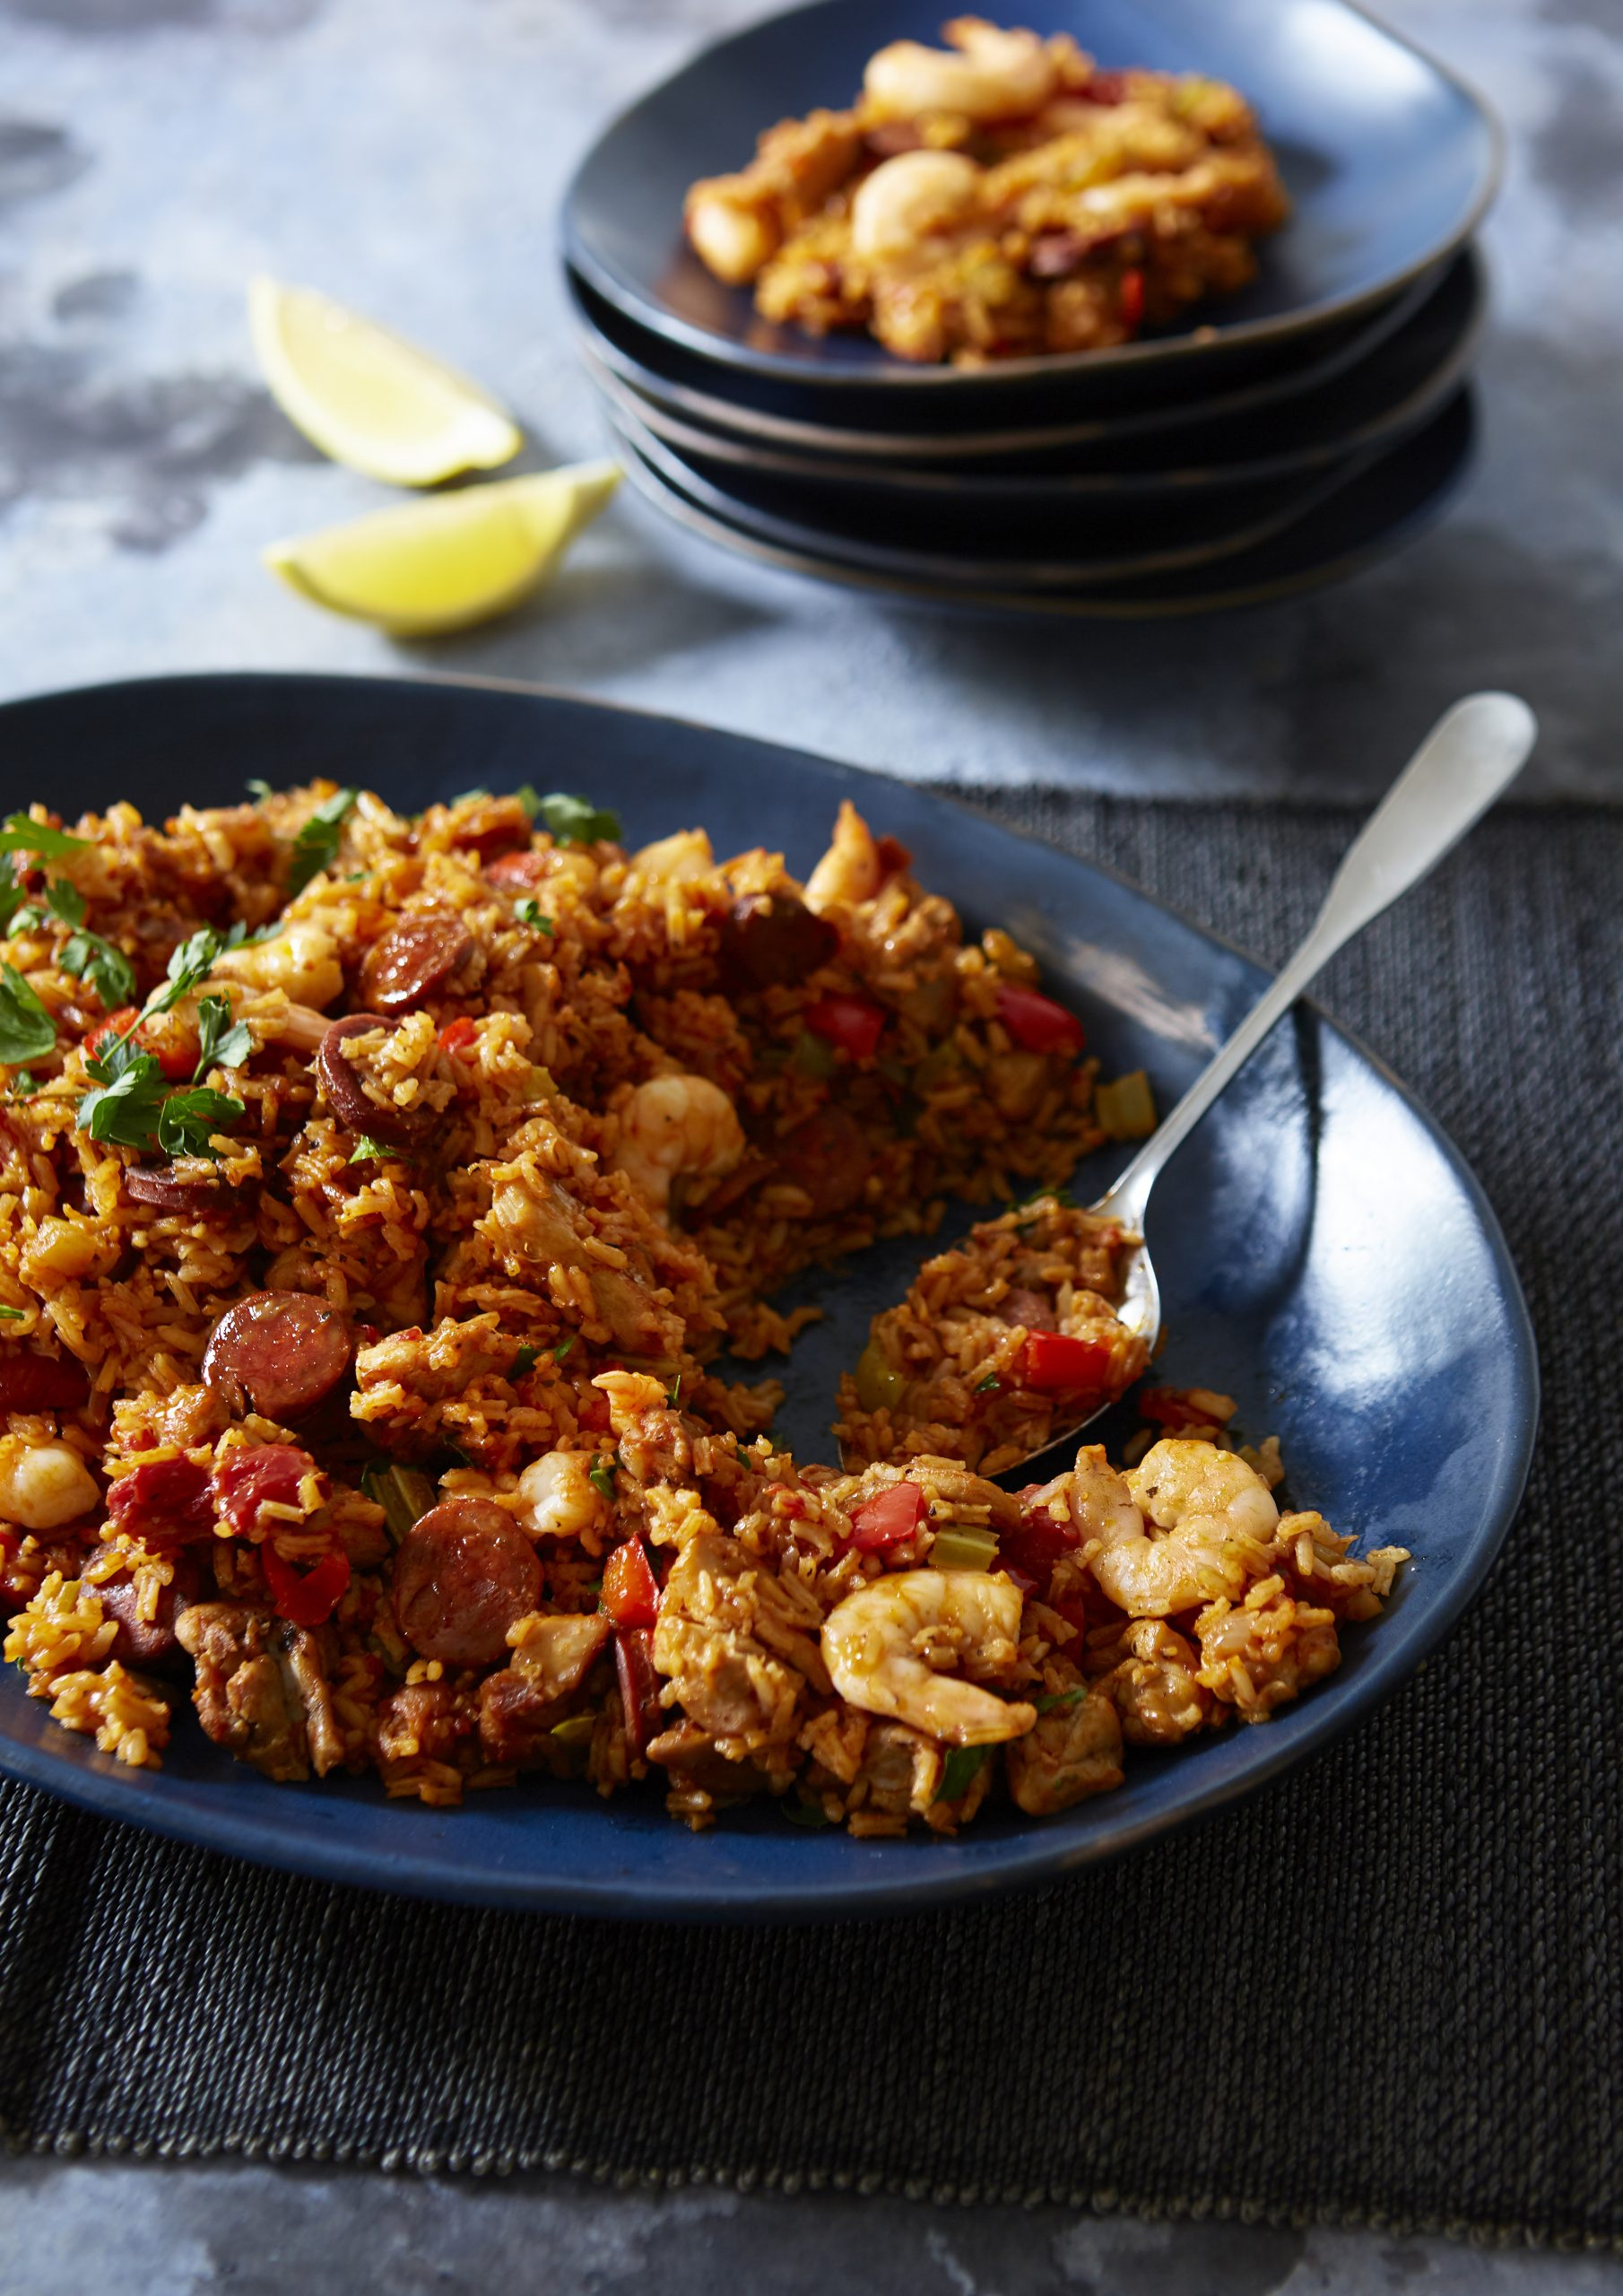 Give this deliciously spicy jambalaya a try with inspirations from the deep-south